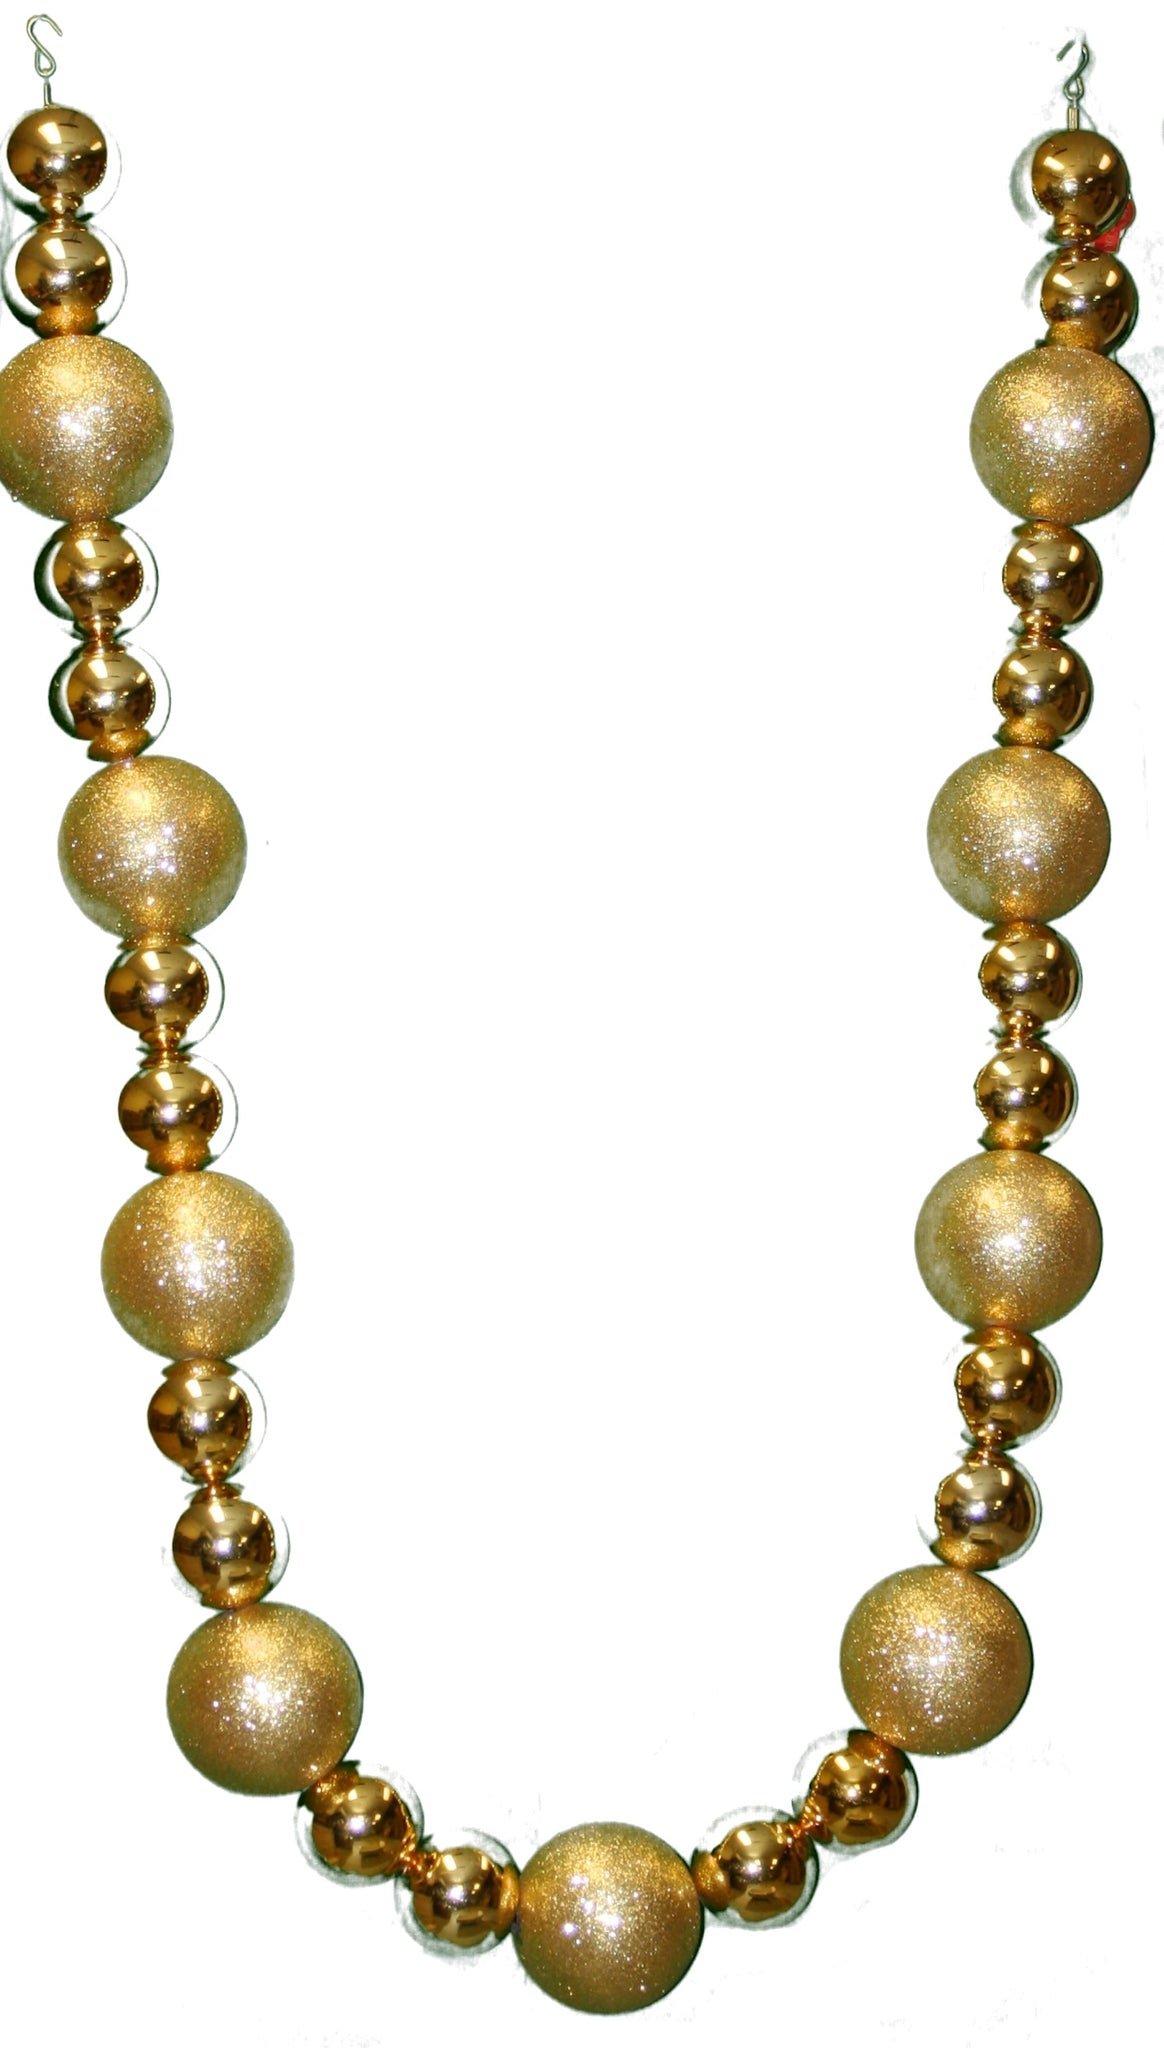 Gold Jumbo Ball Garland - 9'